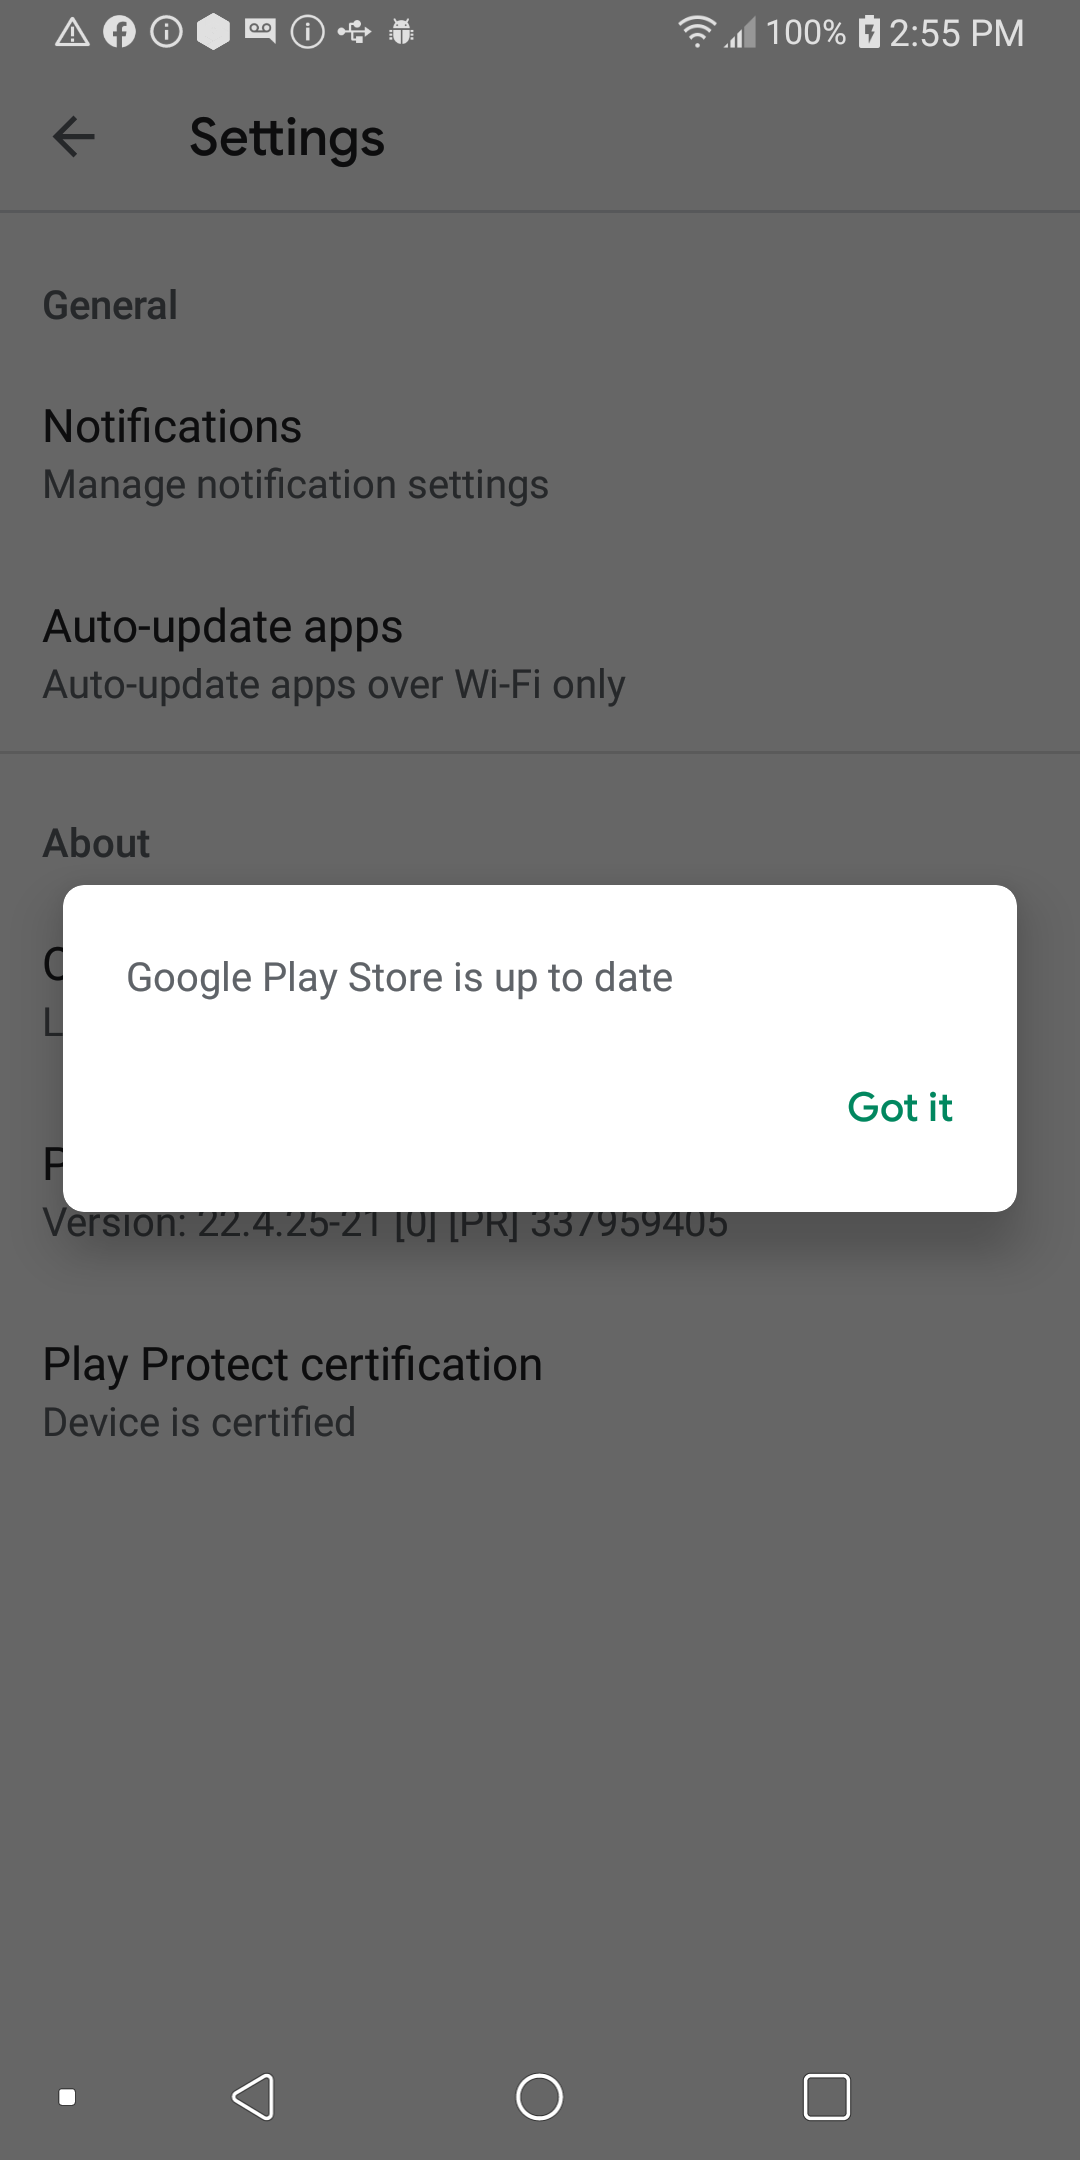 Google play store up to date confirmation